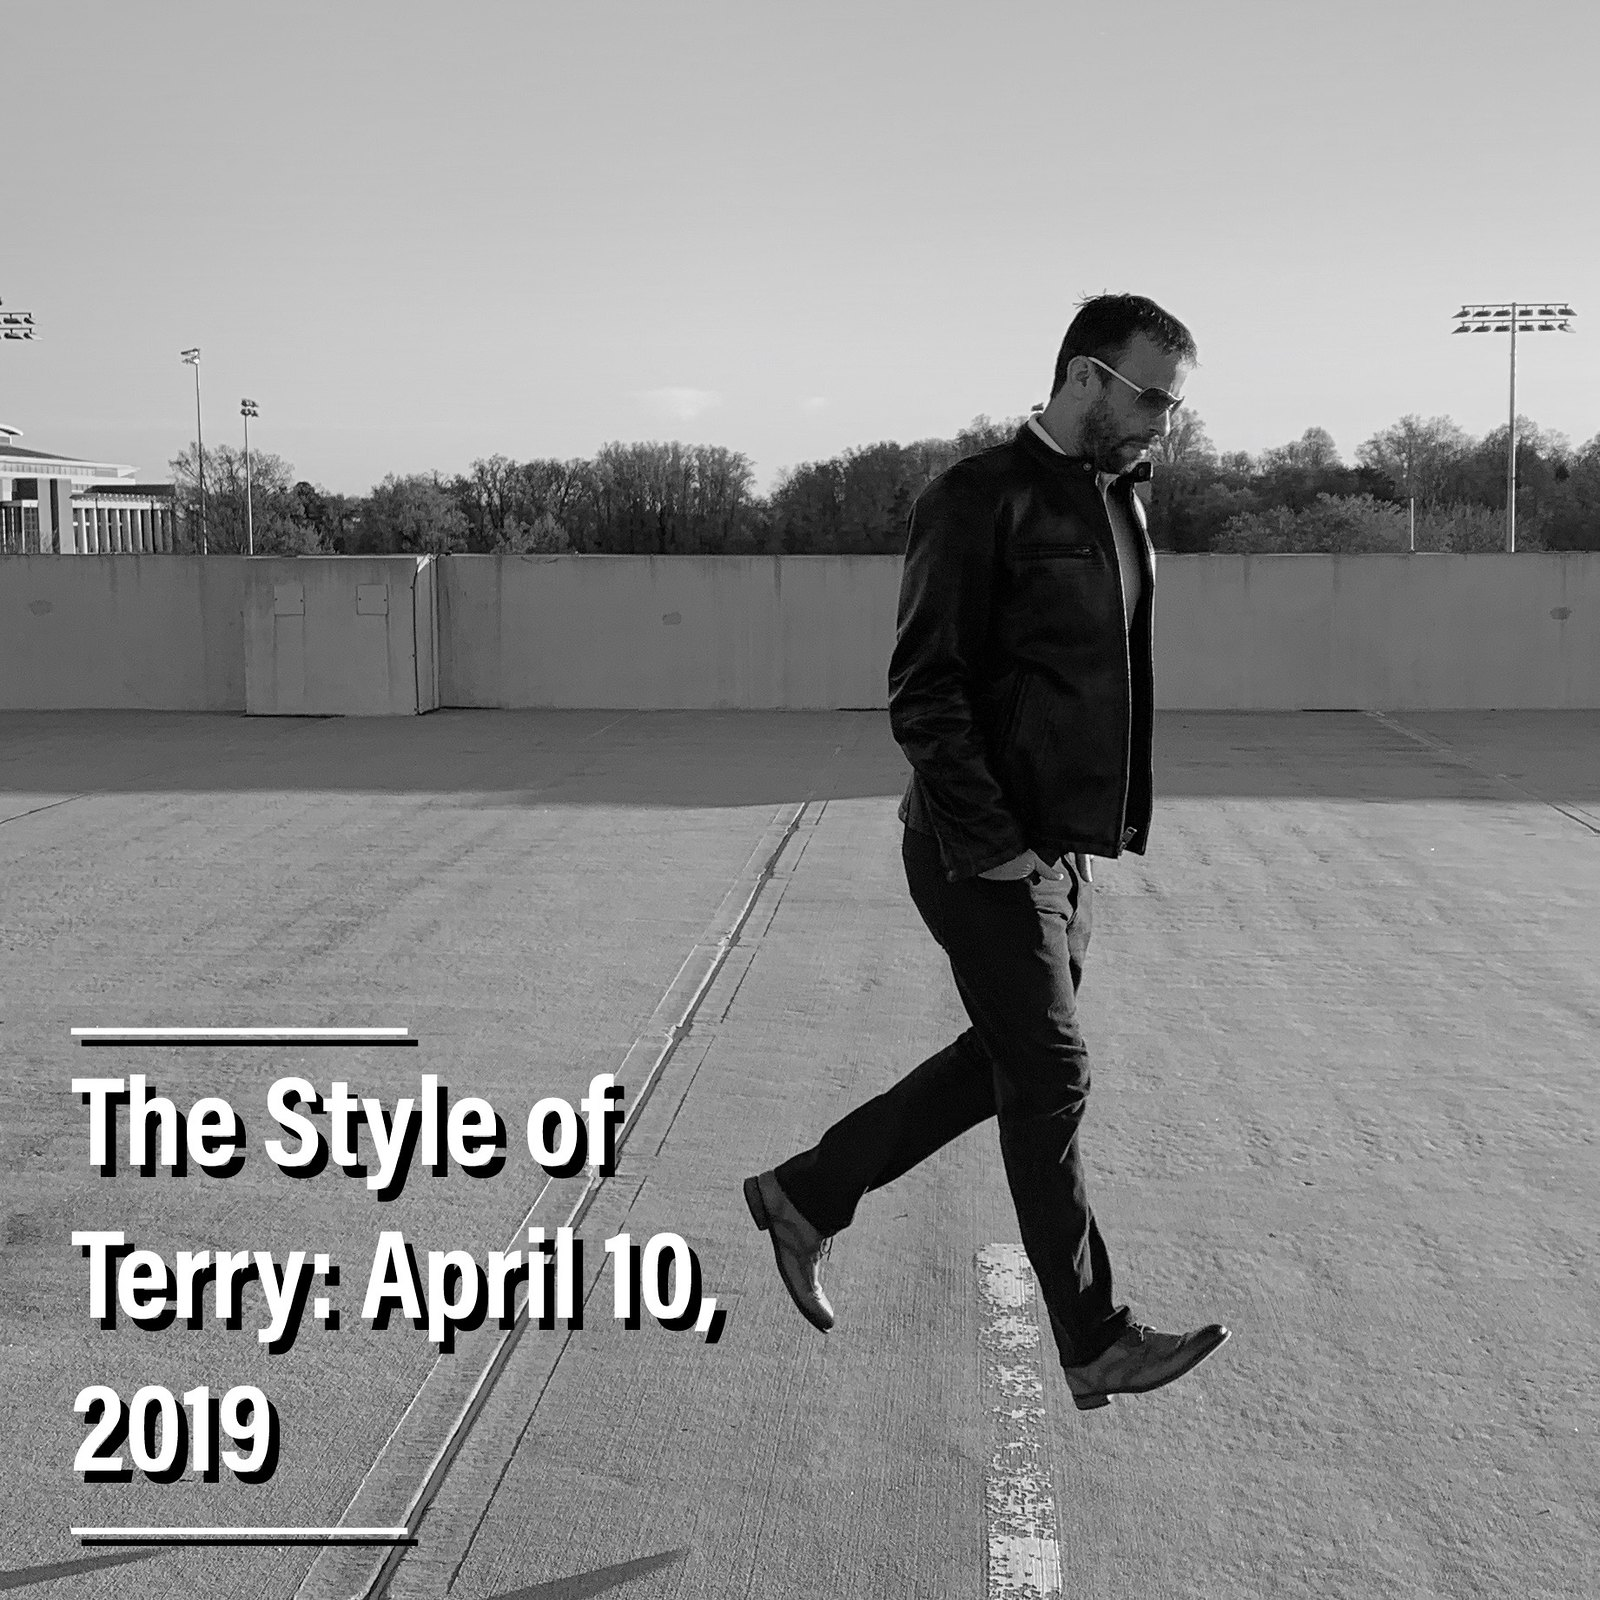 The Style of Terry: 4.10.19